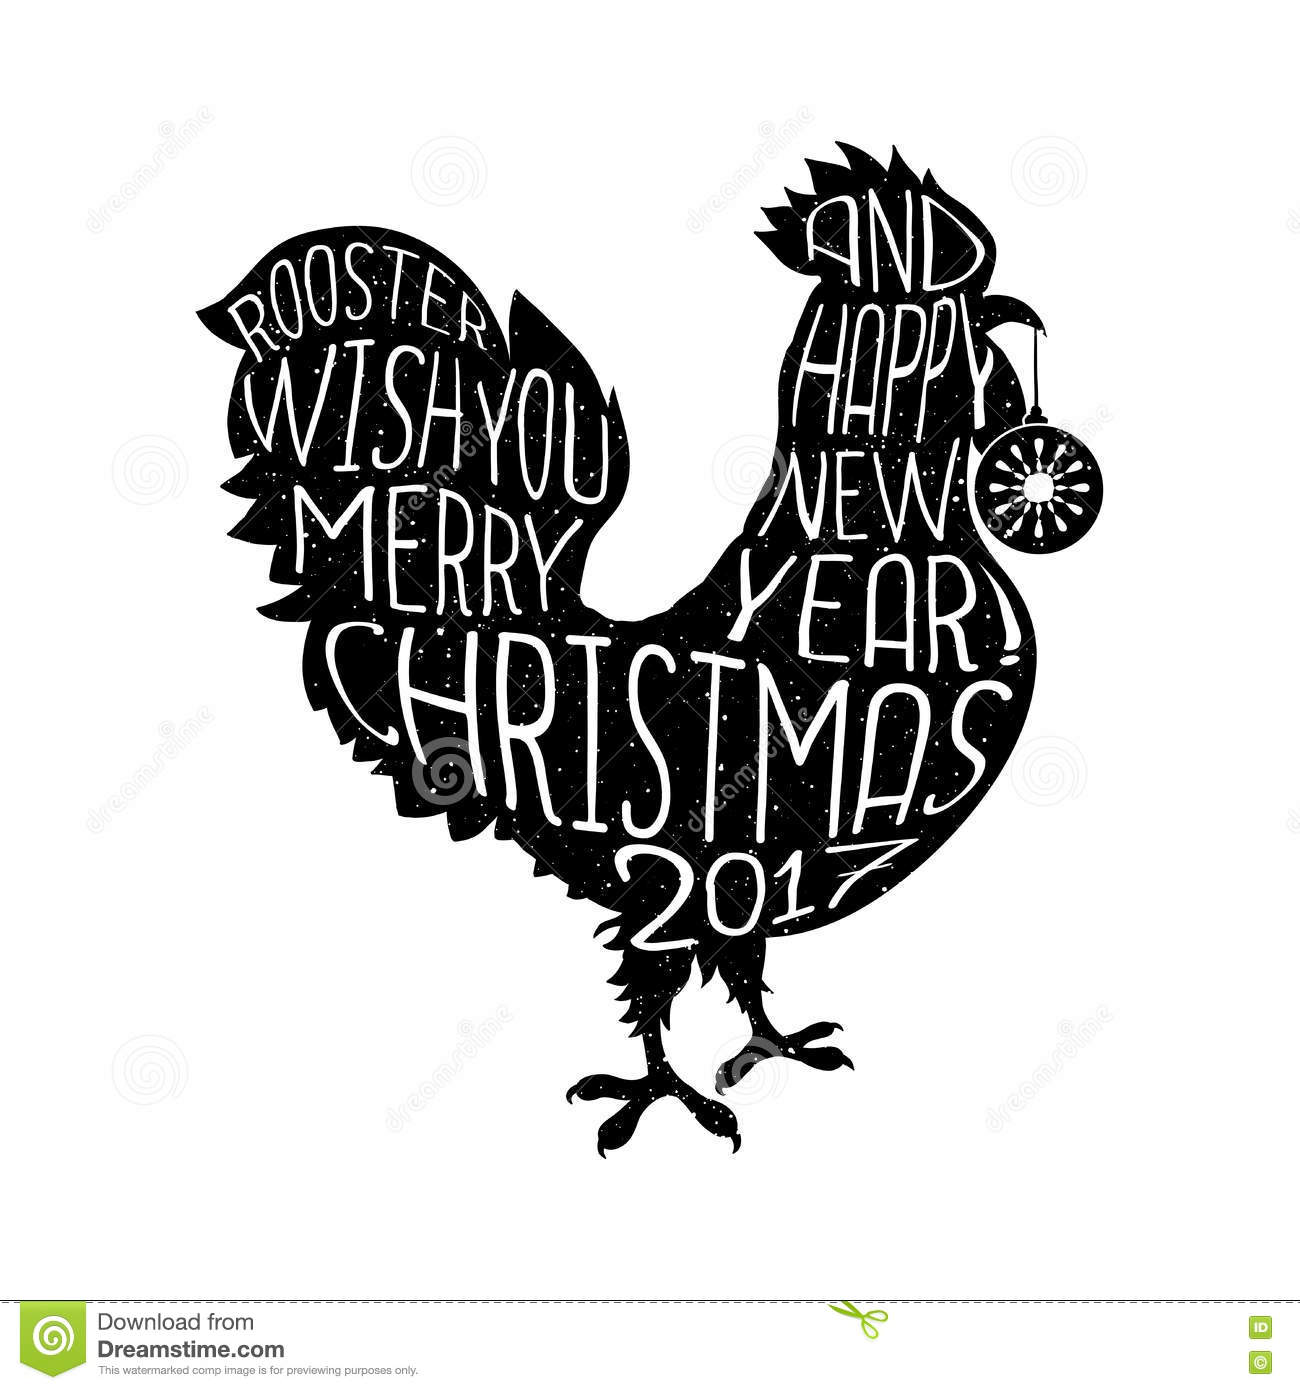 Rooster Wish You Merry Christmas And Happy New Year Hipster Style ...